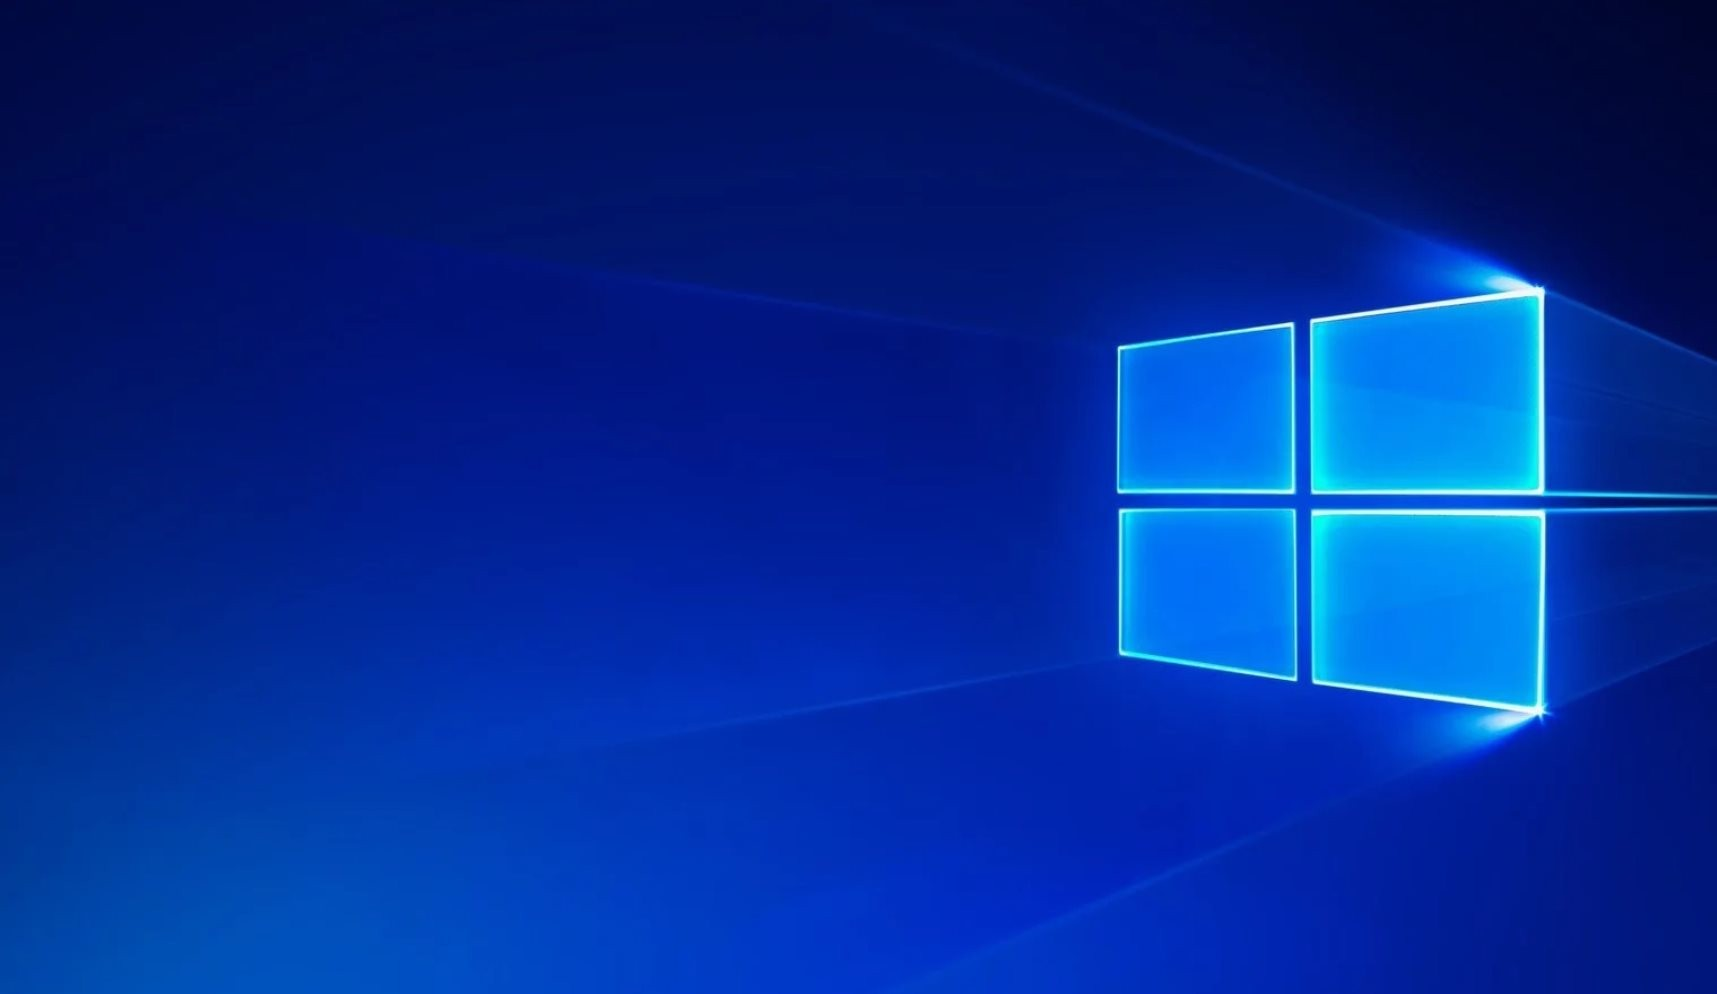 Microsoft acknowledges two new issues in the Windows 10 May 2019 Update